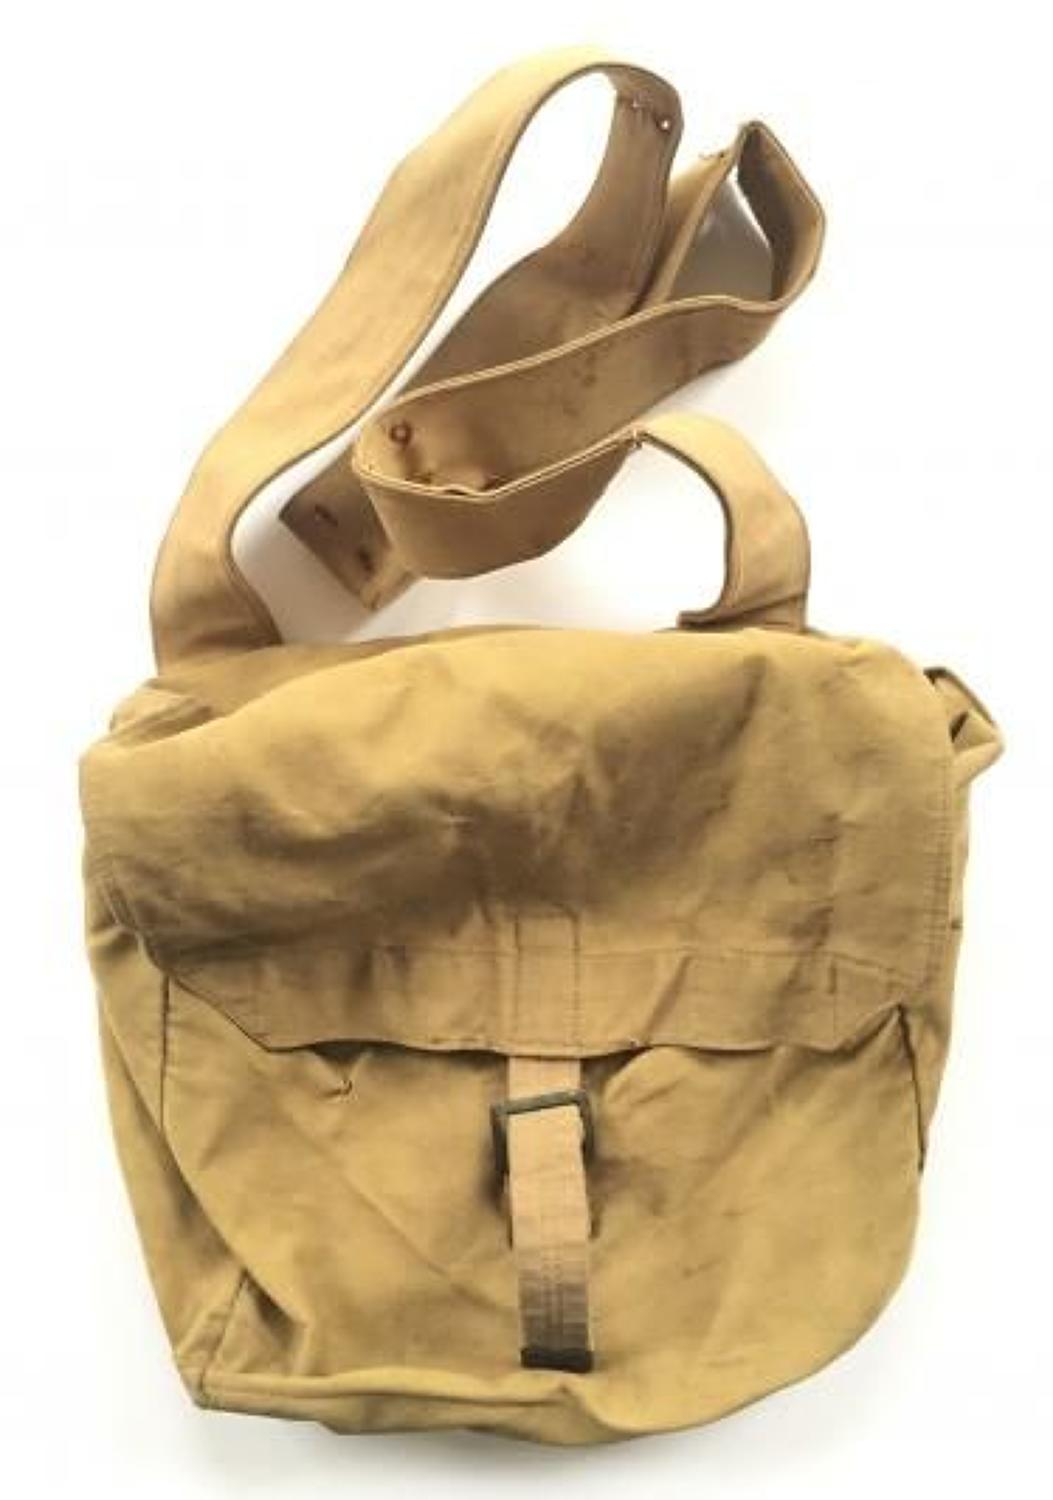 WW2 1940 Home Guard Issue Side Bag.